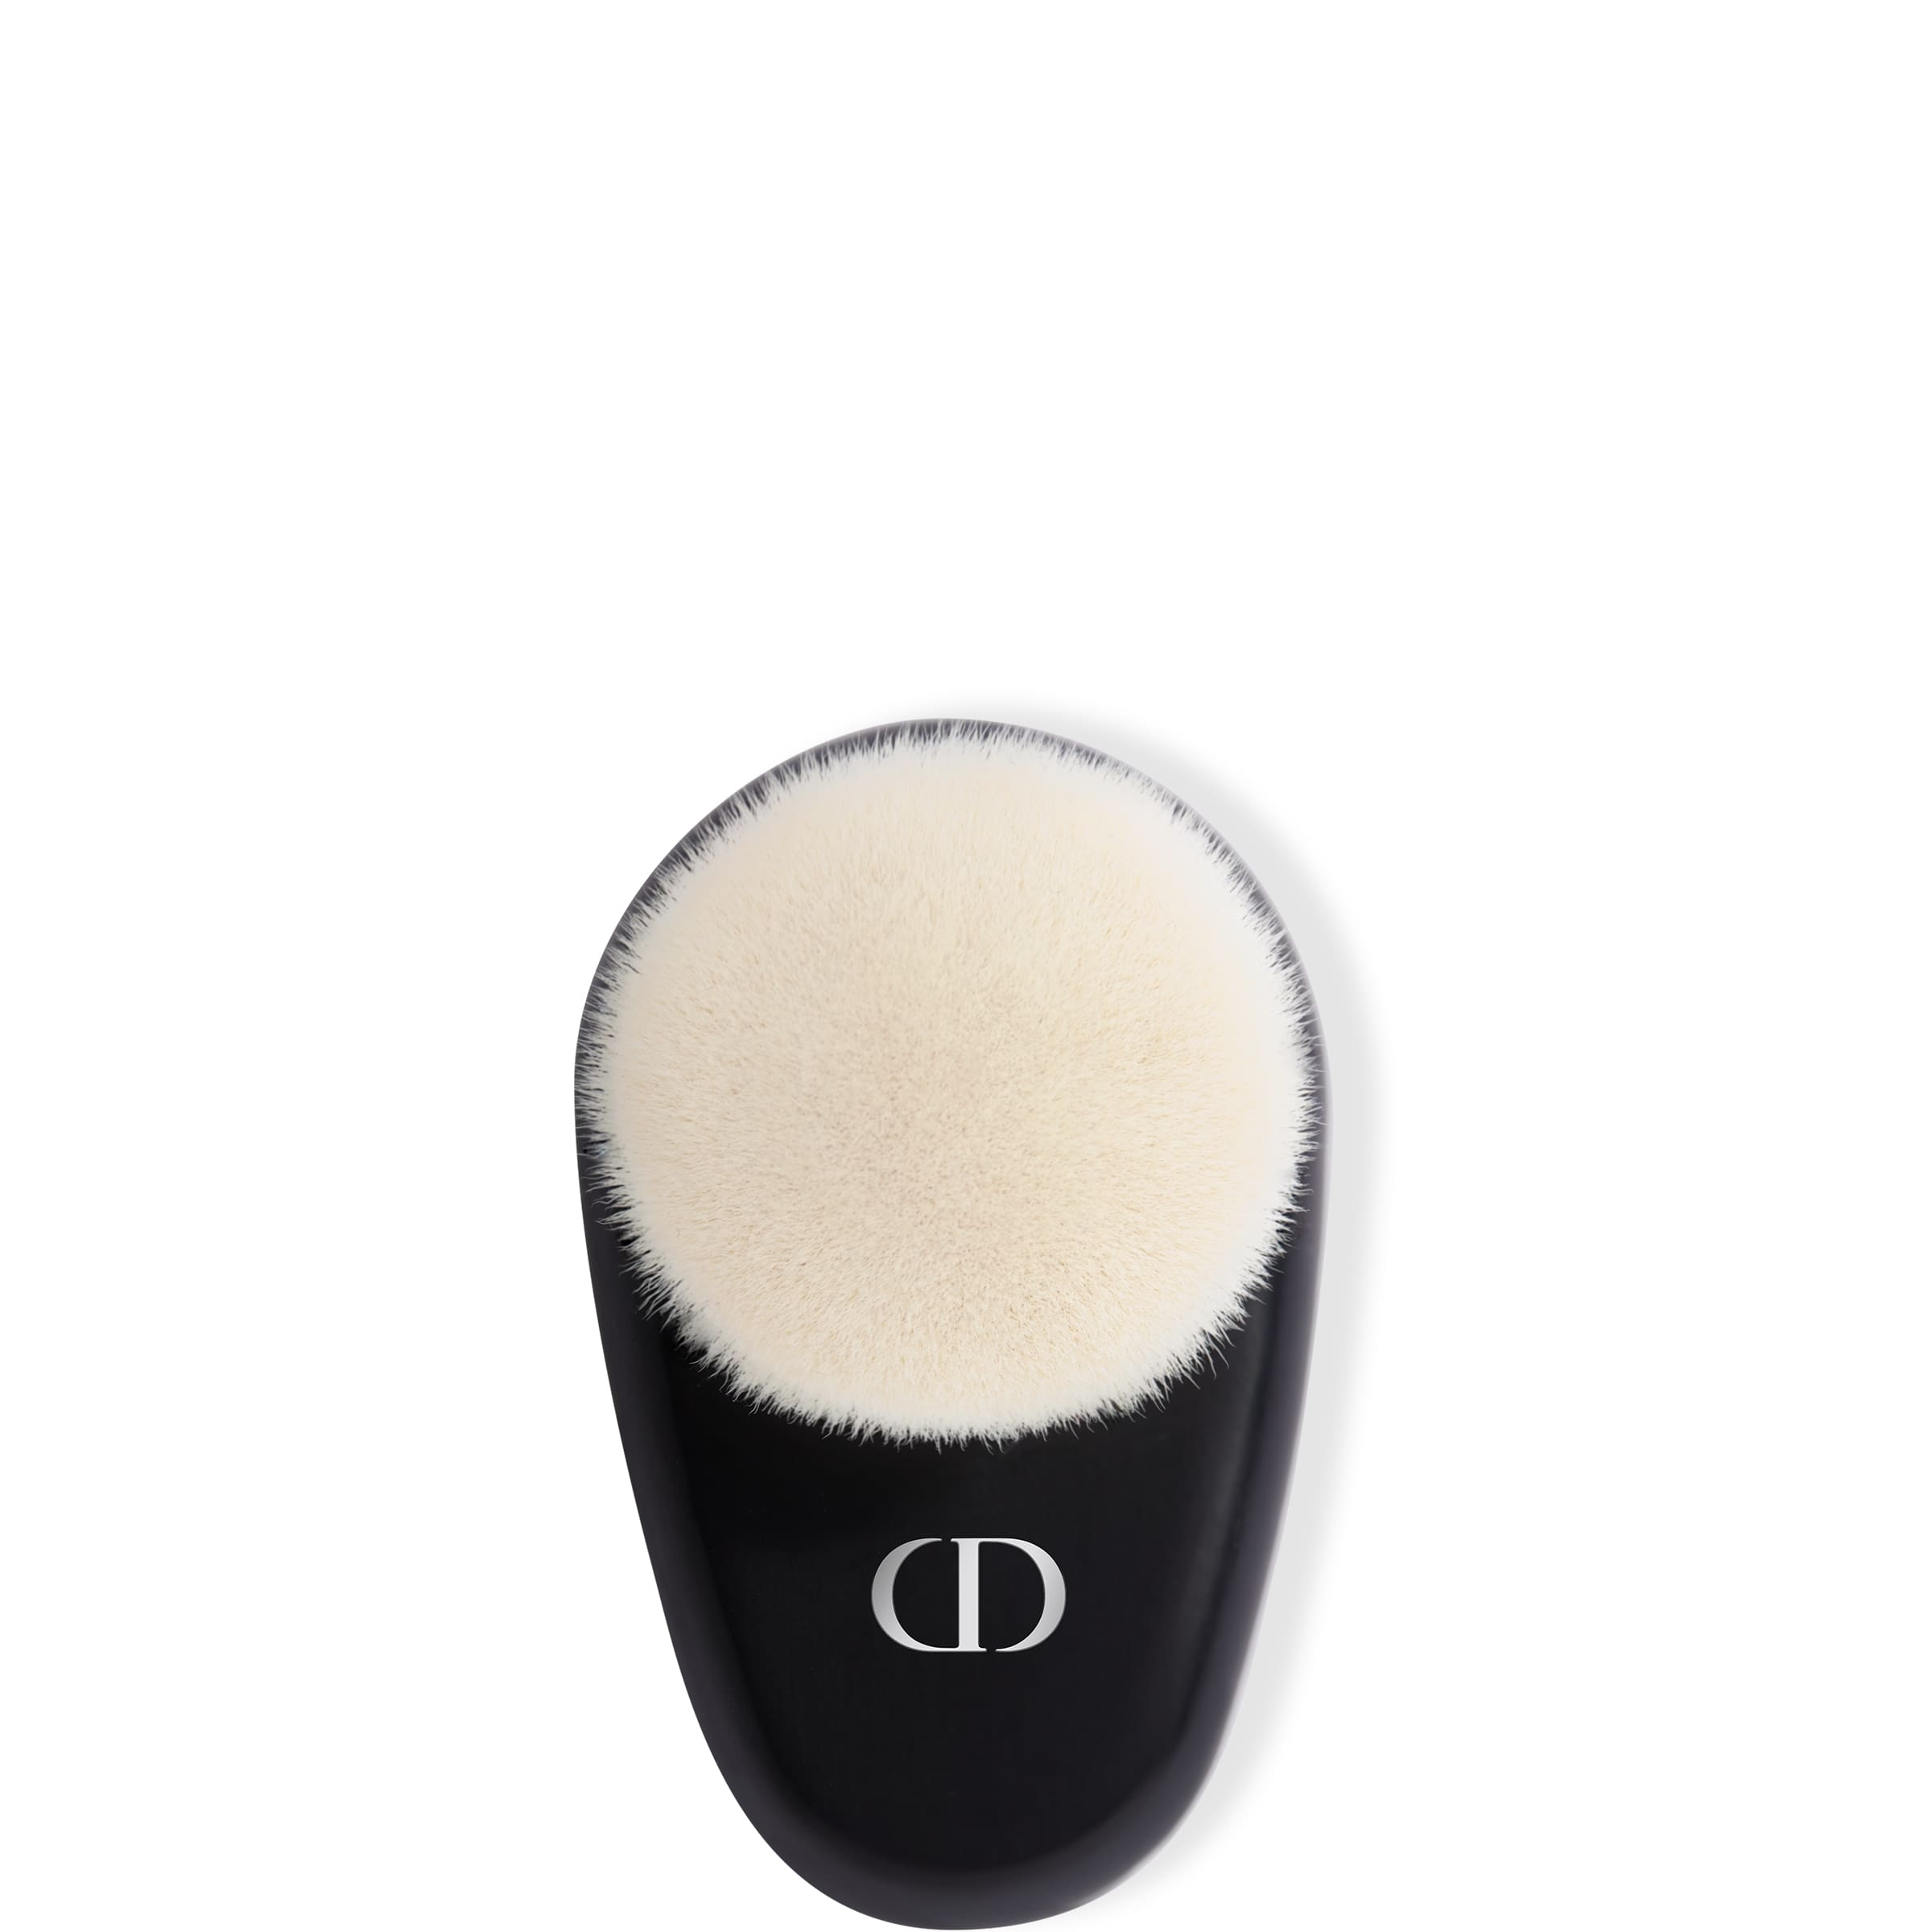 DIOR Backstage Face Brush N°18 Multi-use complexion brush